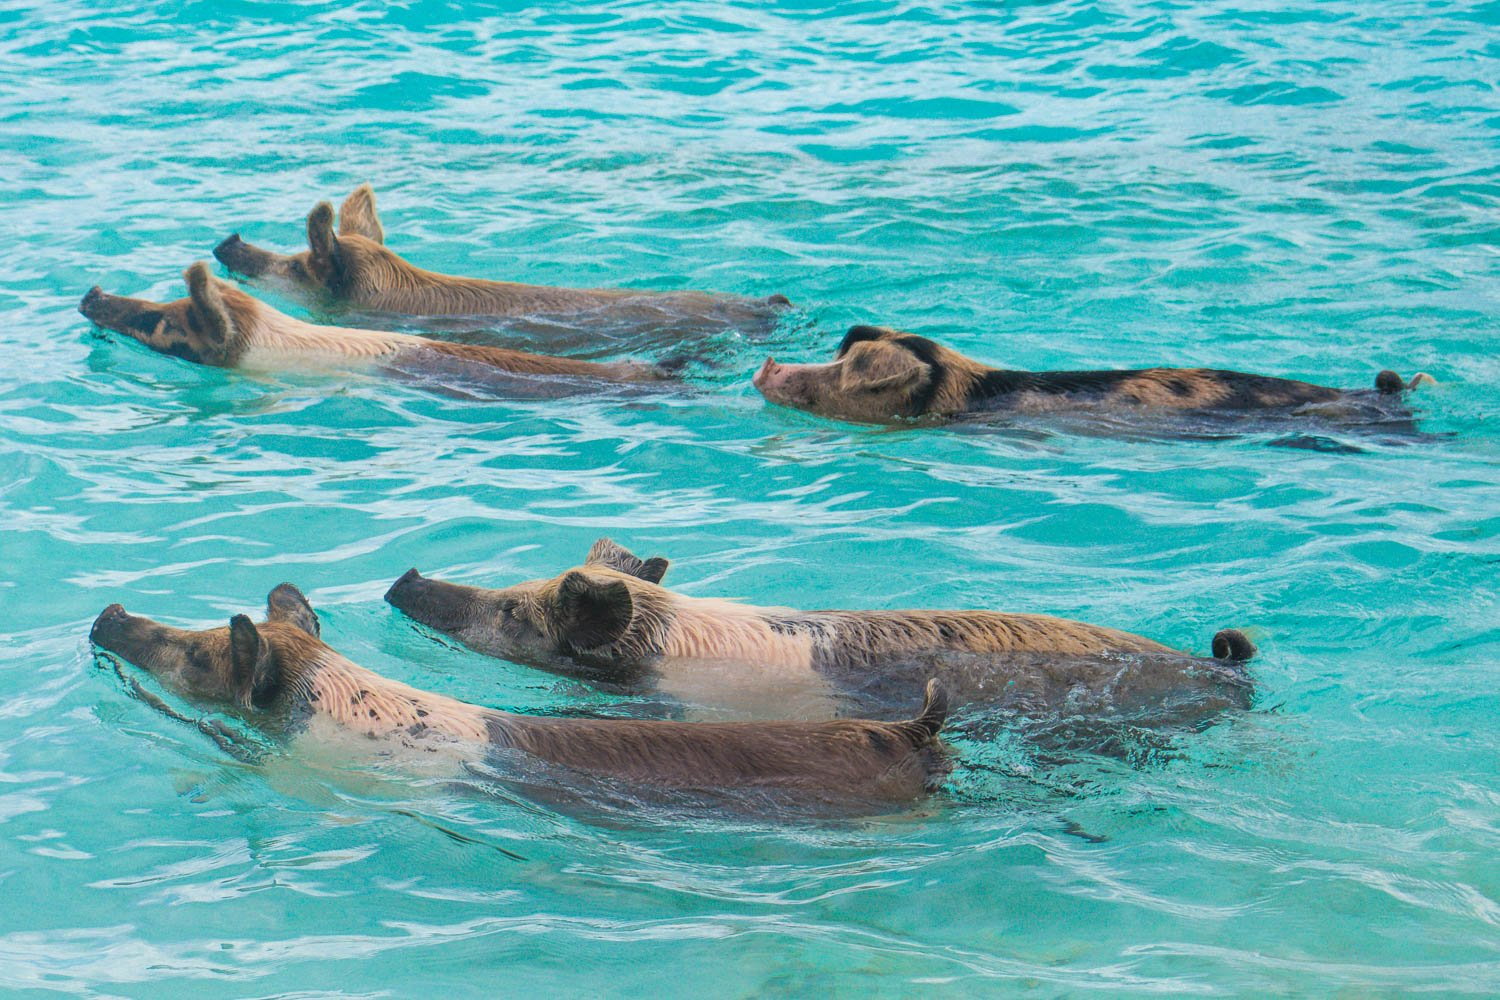 Bahamas Swimming with Pigs Exuma at Pig Island in the Exuma Cays of the Bahamas Islands.